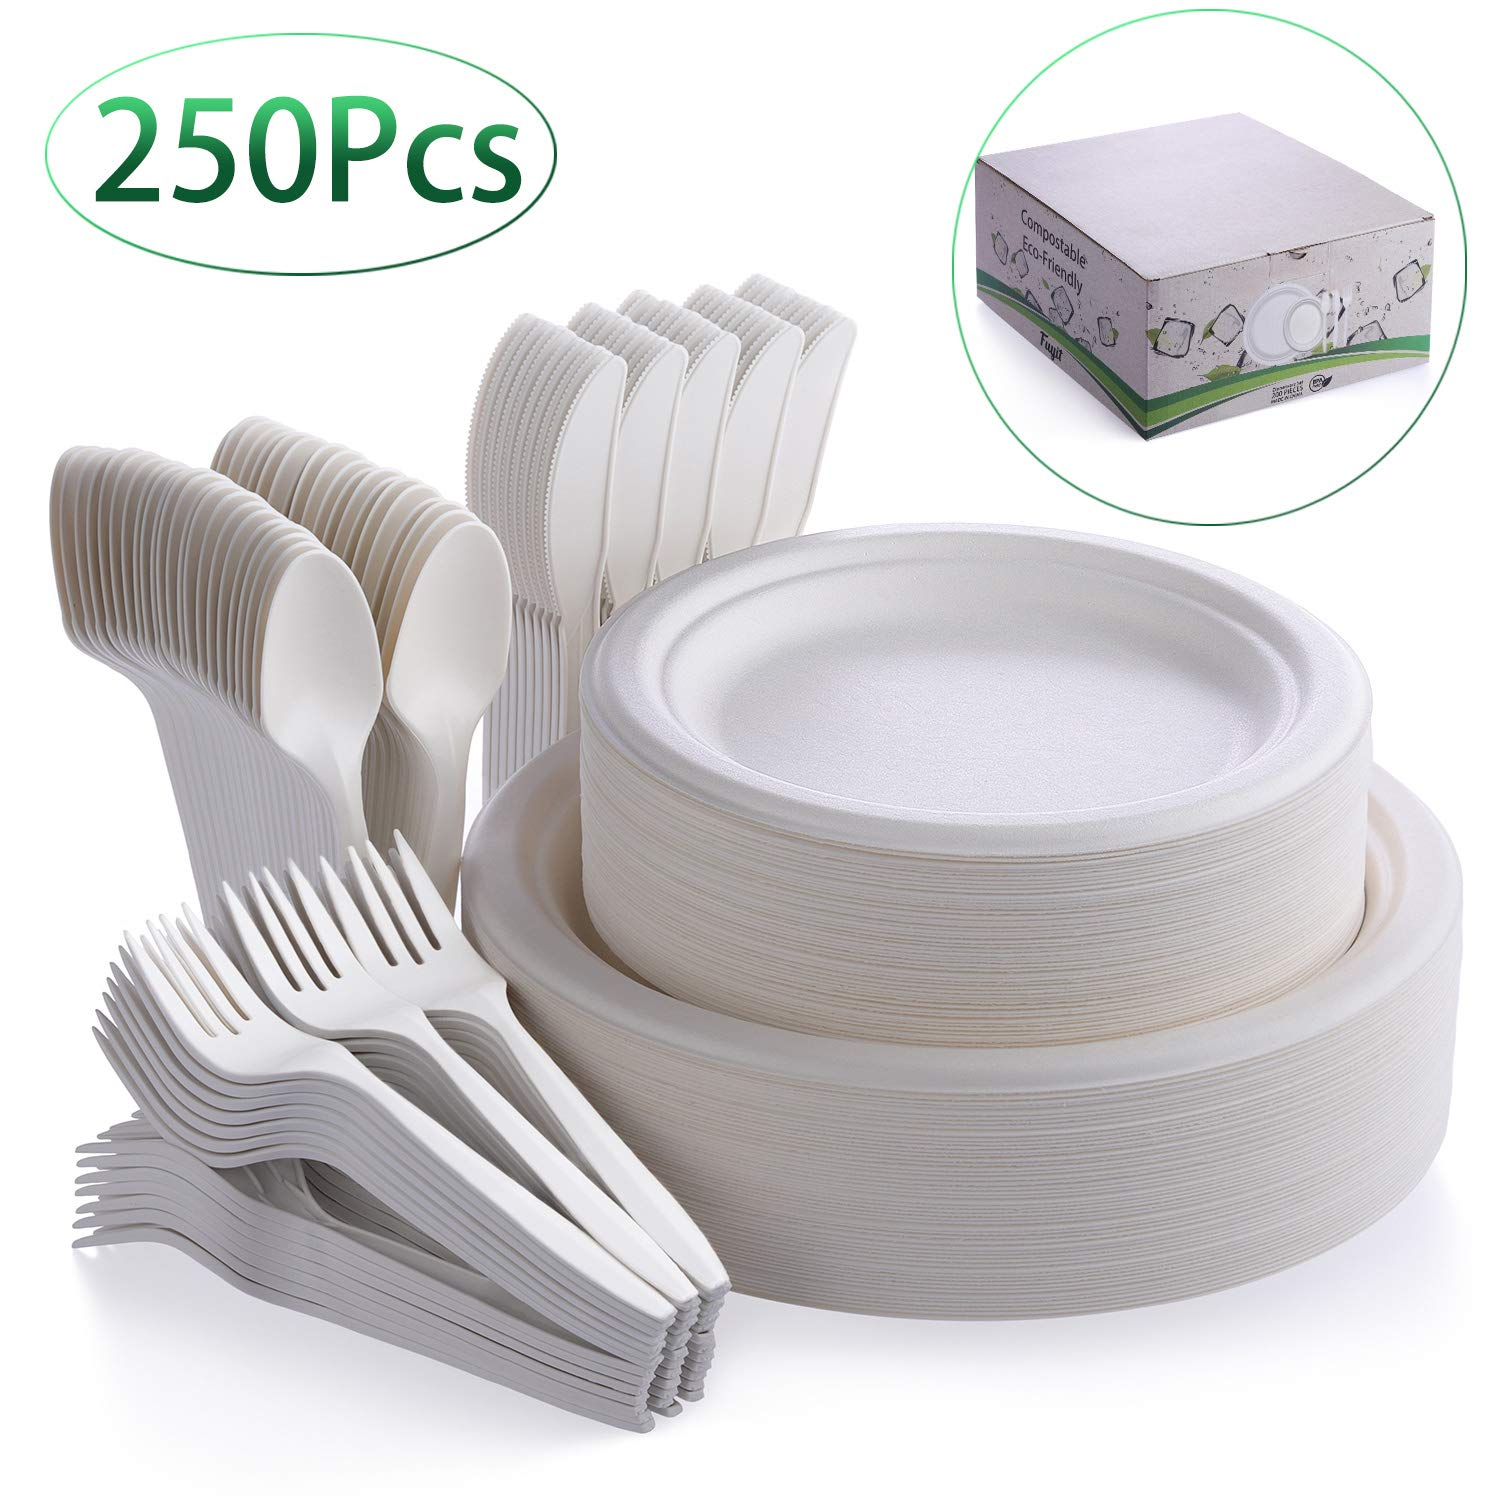 Fuyit 250Pcs Disposable Dinnerware Set, Compostable Sugarcane Cutlery Eco-Friendly Tableware Includes Biodegradable Paper Plates, Forks, Knives and Spoons Combo for Party, Camping, Picnic (White) by Fuyit